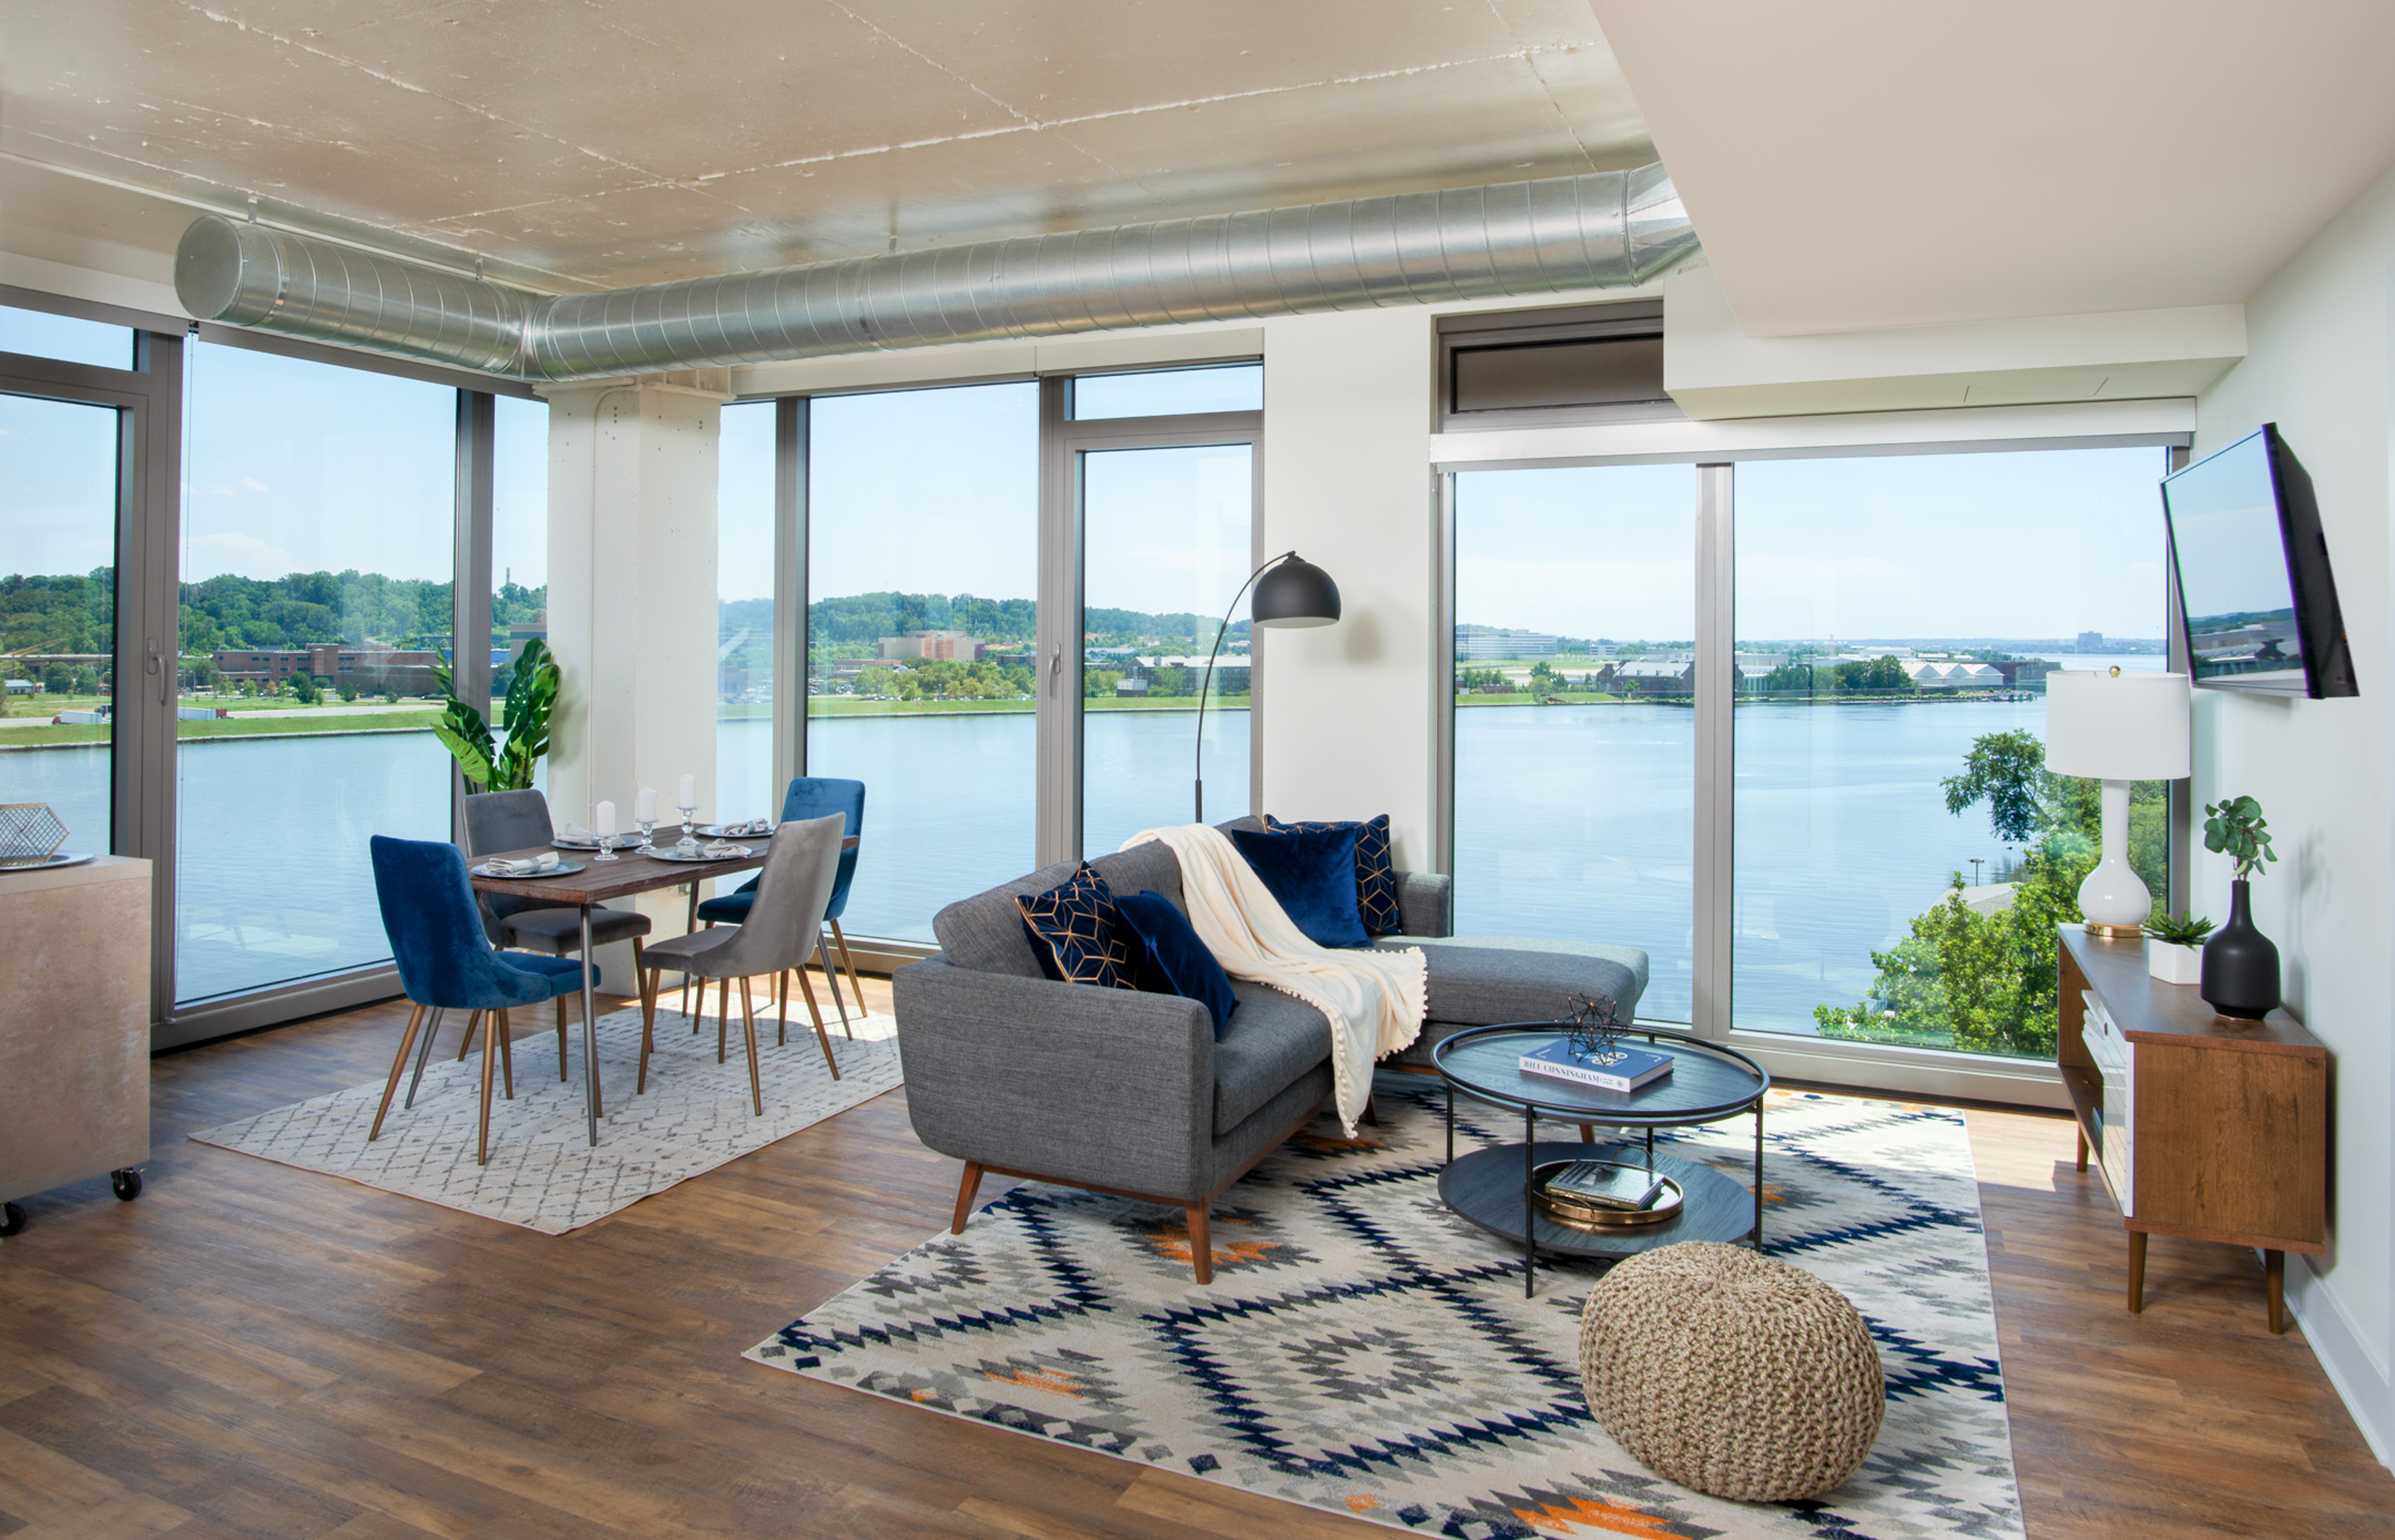 New Luxury Apartments At D C S Buzzard Point Offer Amenities And Water View The Washington Post